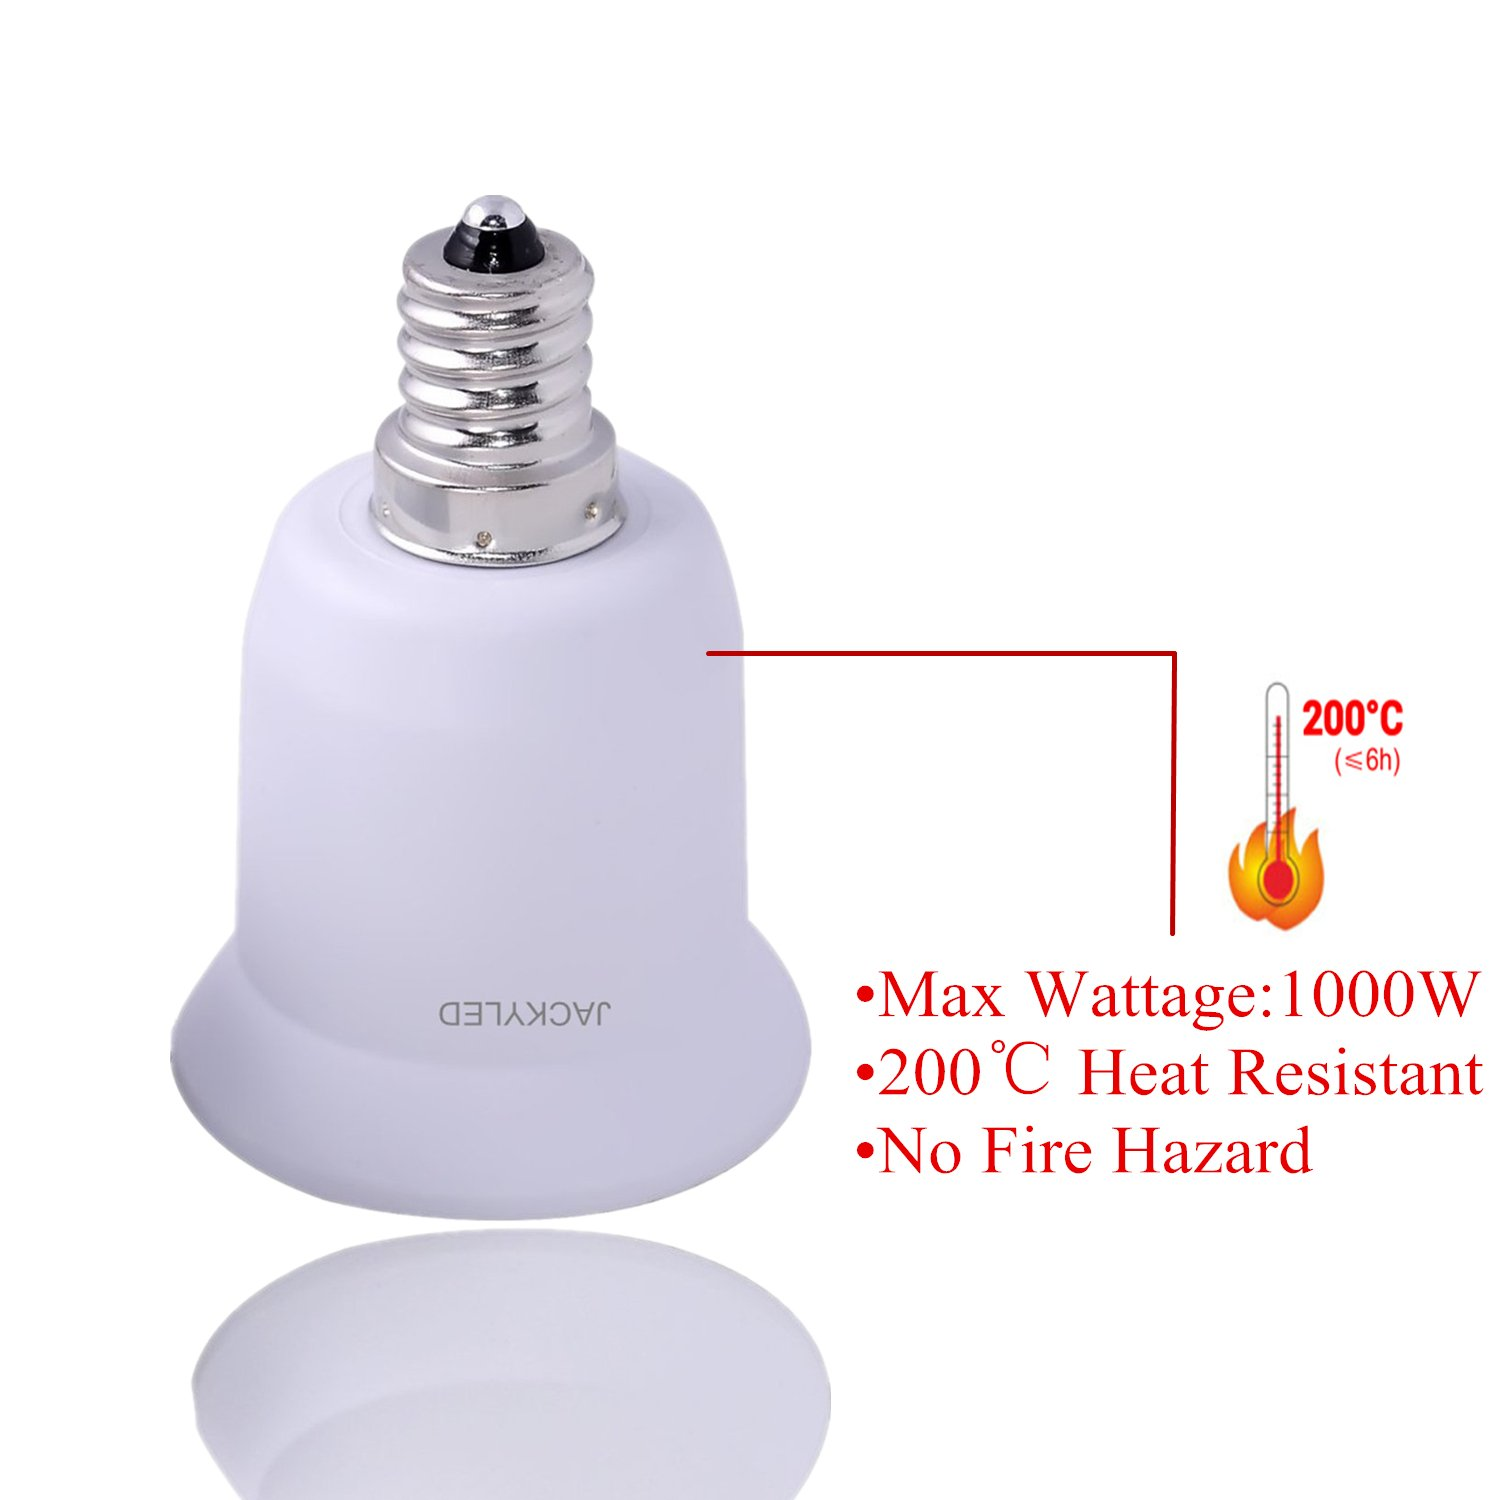 1-Pack E12 to E26 / E27 Adapter, JACKYLED Chandelier Socket (E12) to Medium Socket (E26/E27) Converter ,Max Wattage 1000W,200℃ Heat Resistant,No Fire Hazard